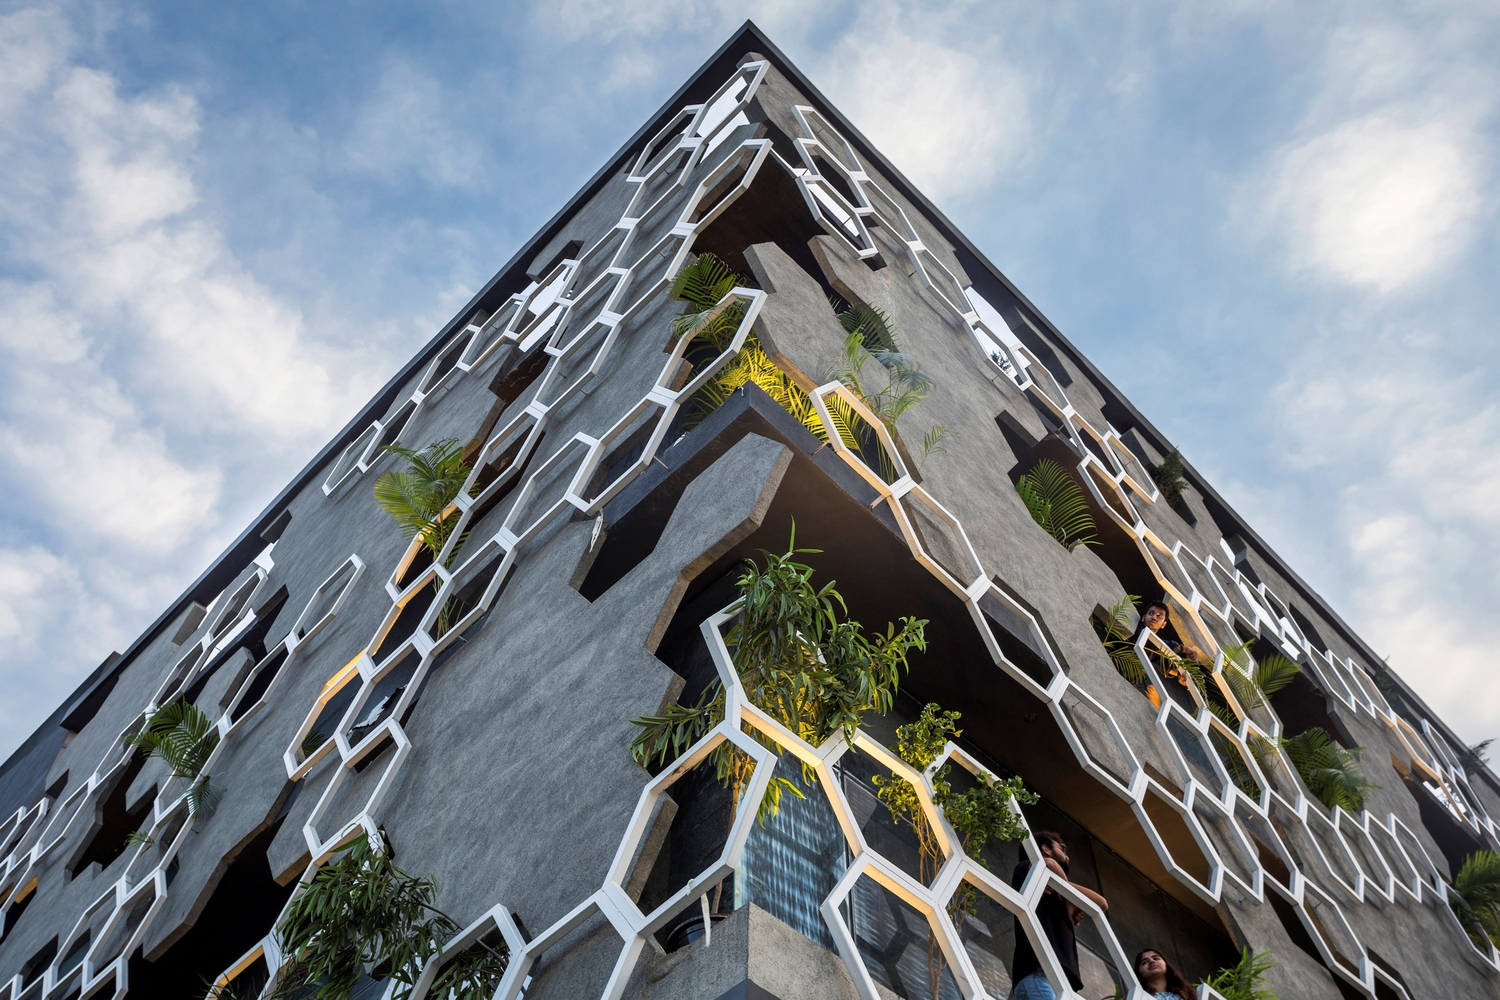 Facade: Hexalace Office Building By Studio Ardete Features A